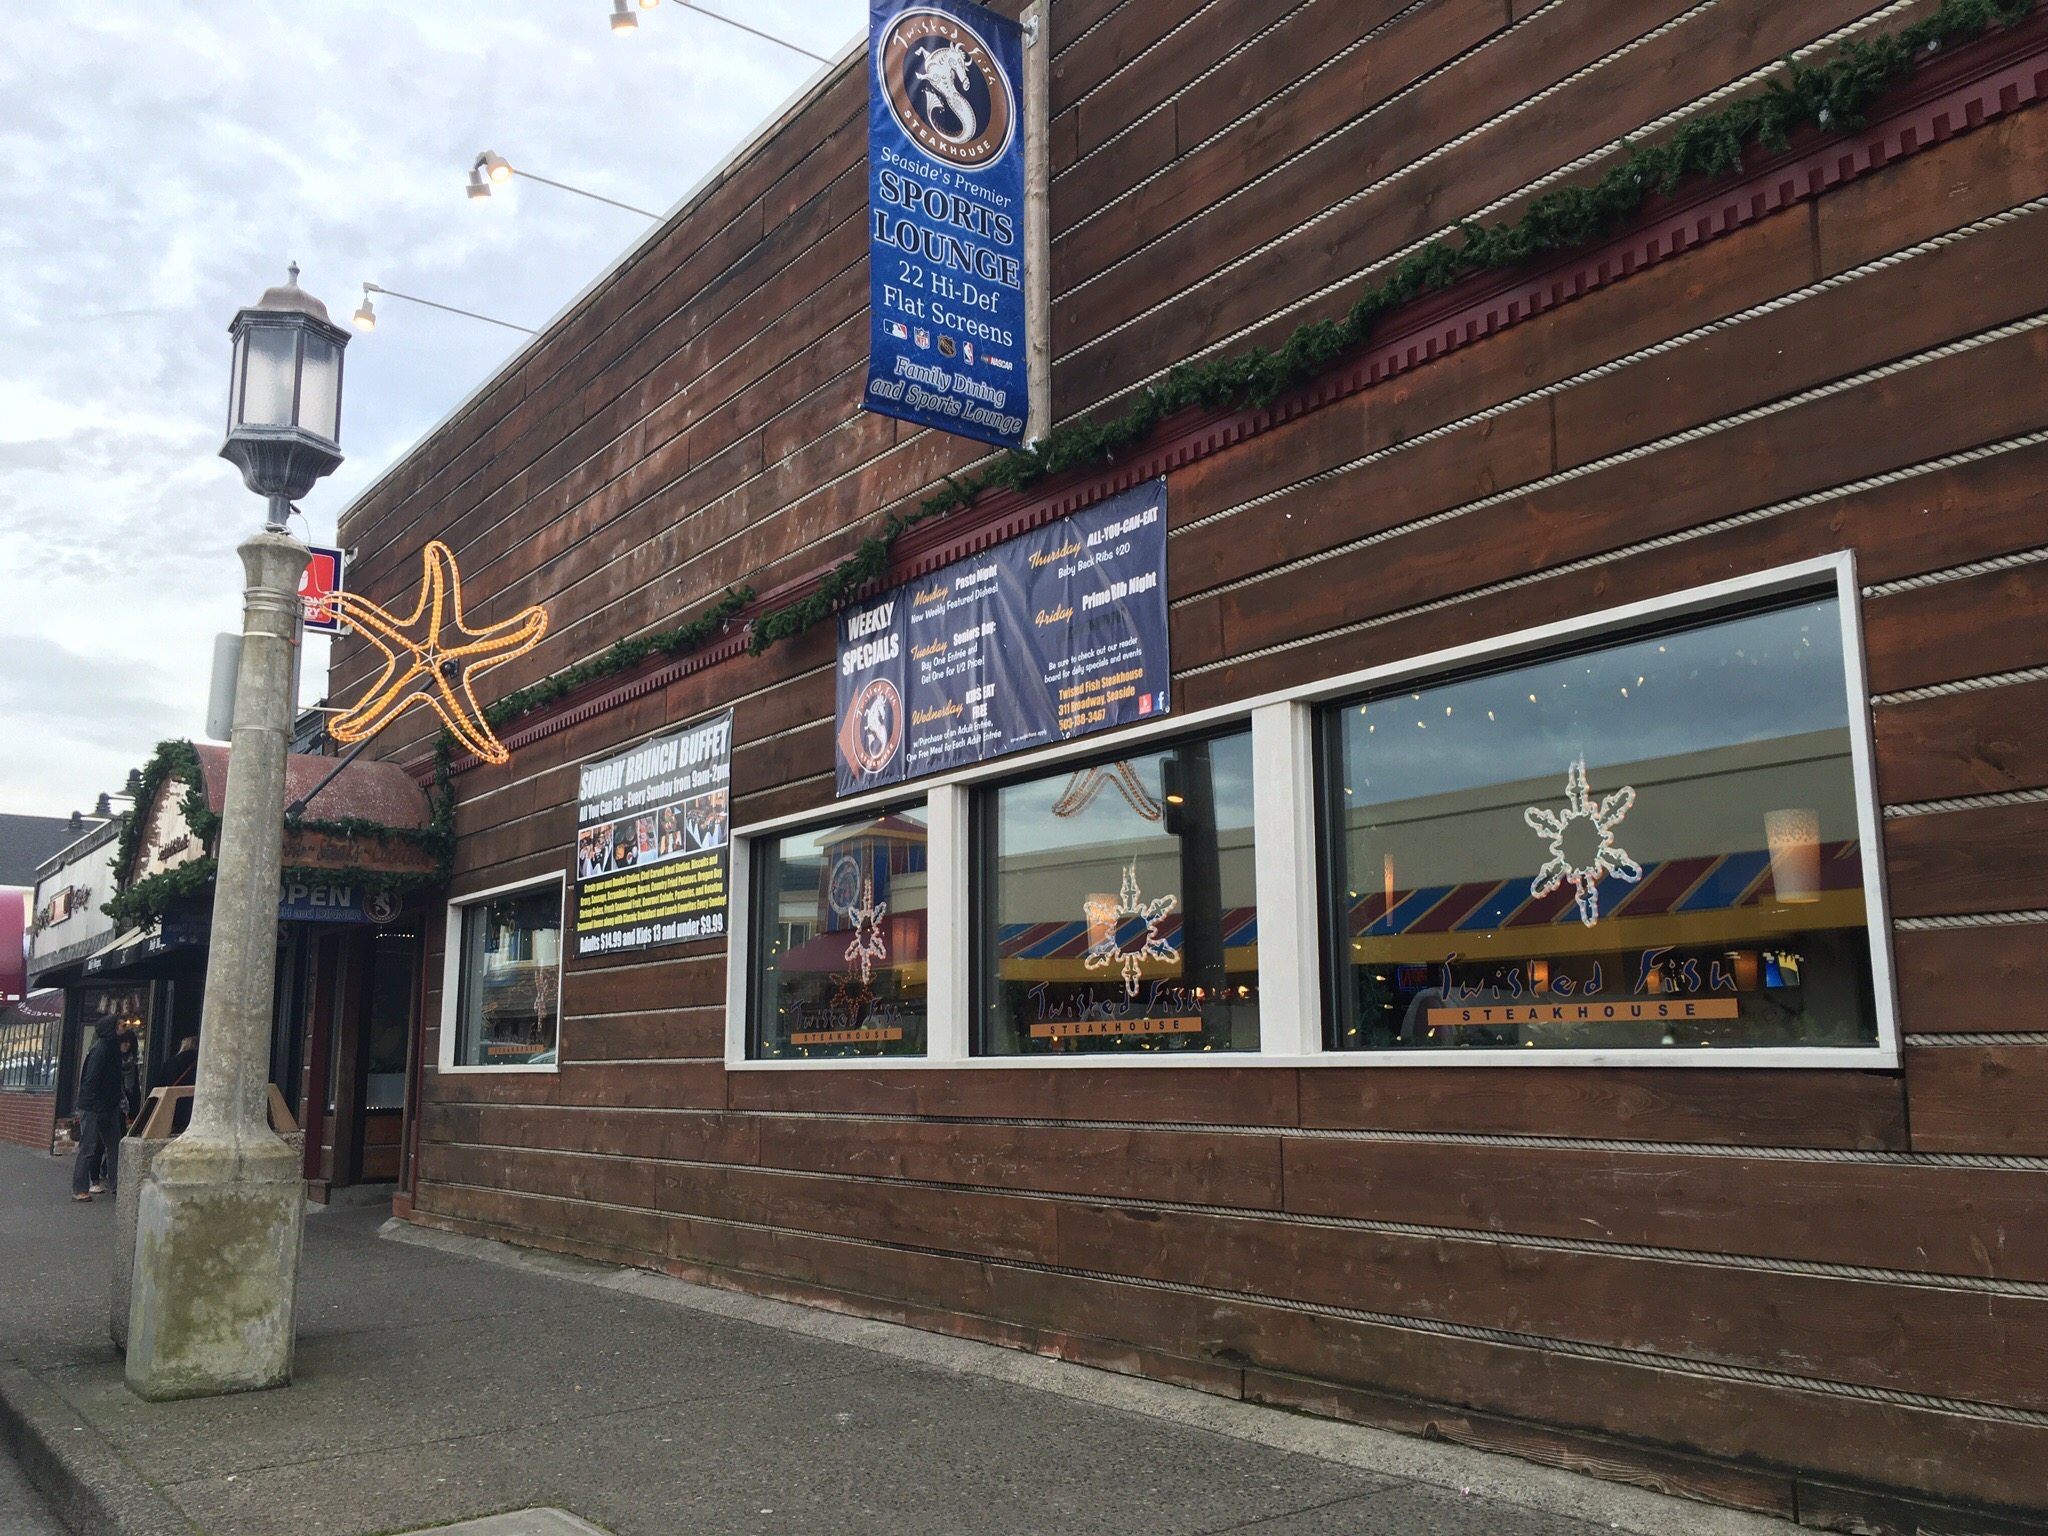 Twisted Fish Steakhouse in Seaside, OR (photo by Cat Stelzer)